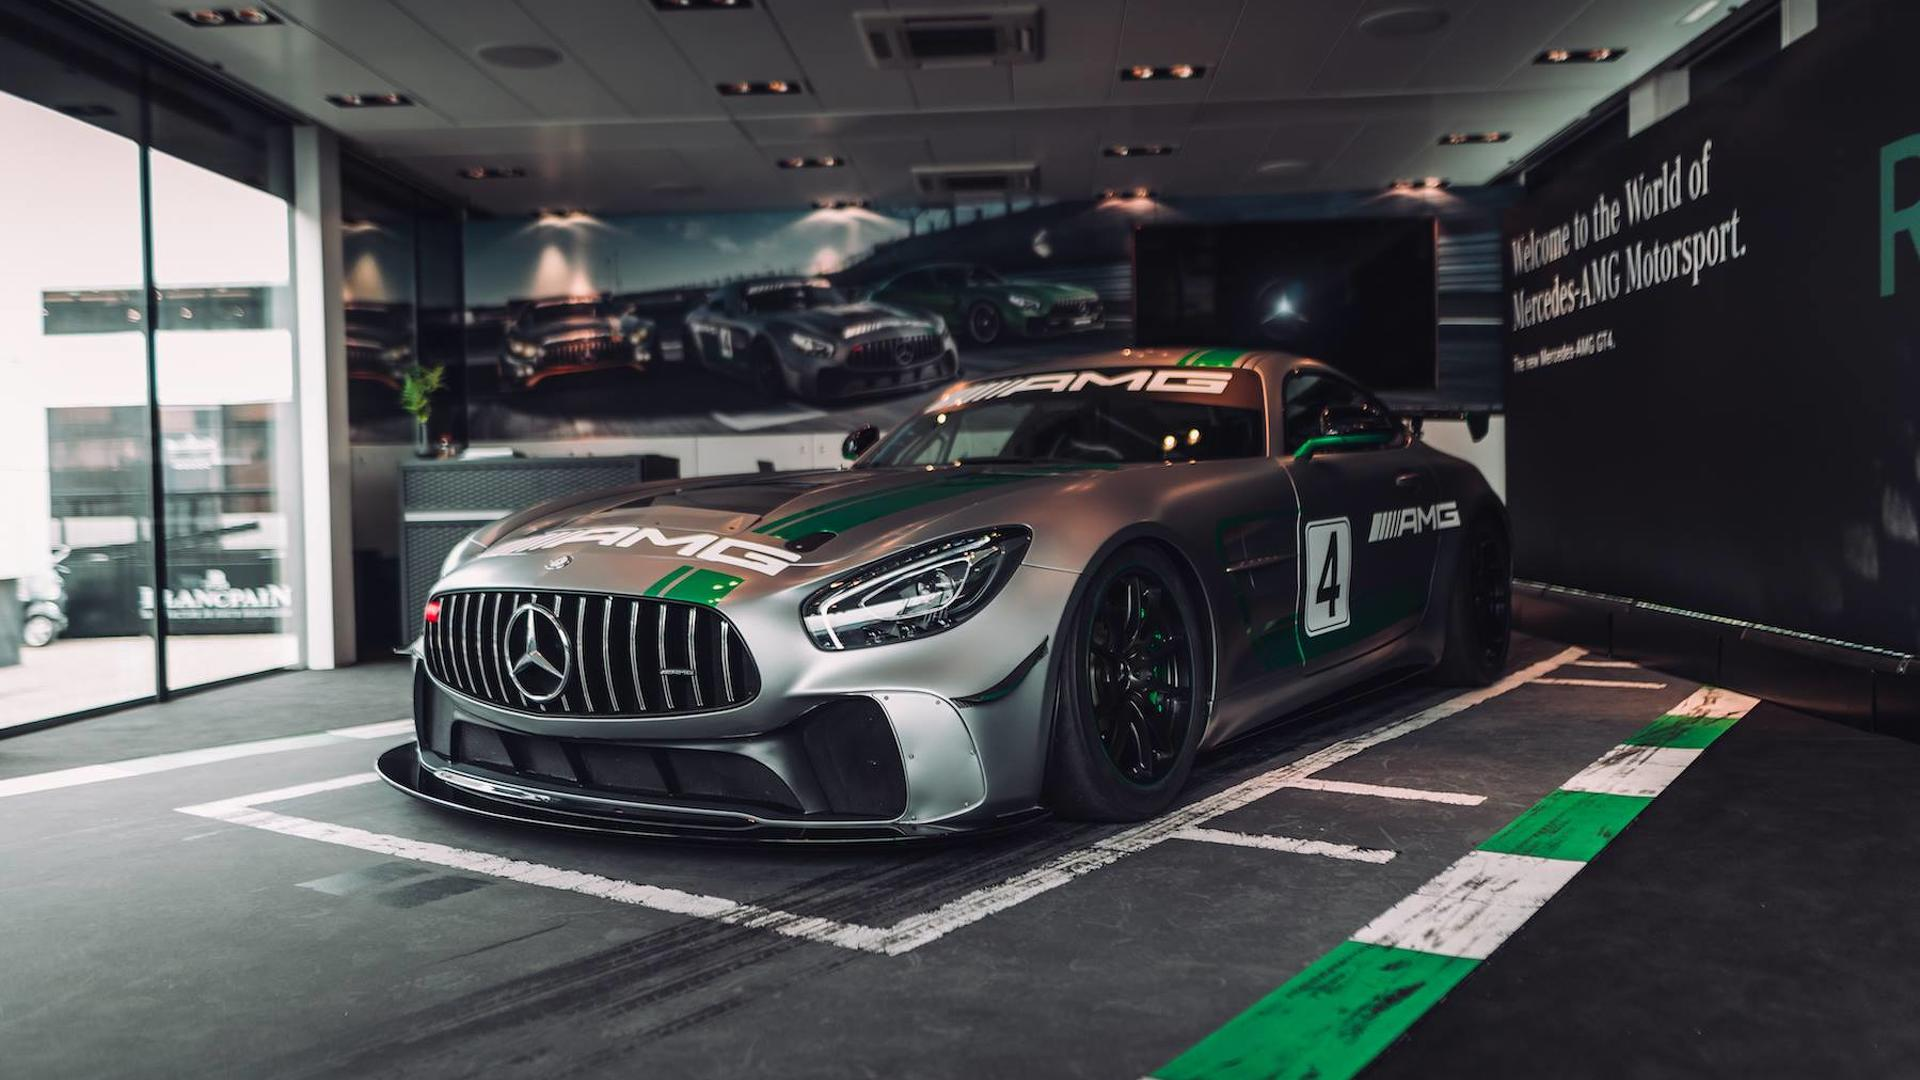 Mercedes Amg Gt4 >> Mercedes Amg Gt4 Is One Mean Racing Machine